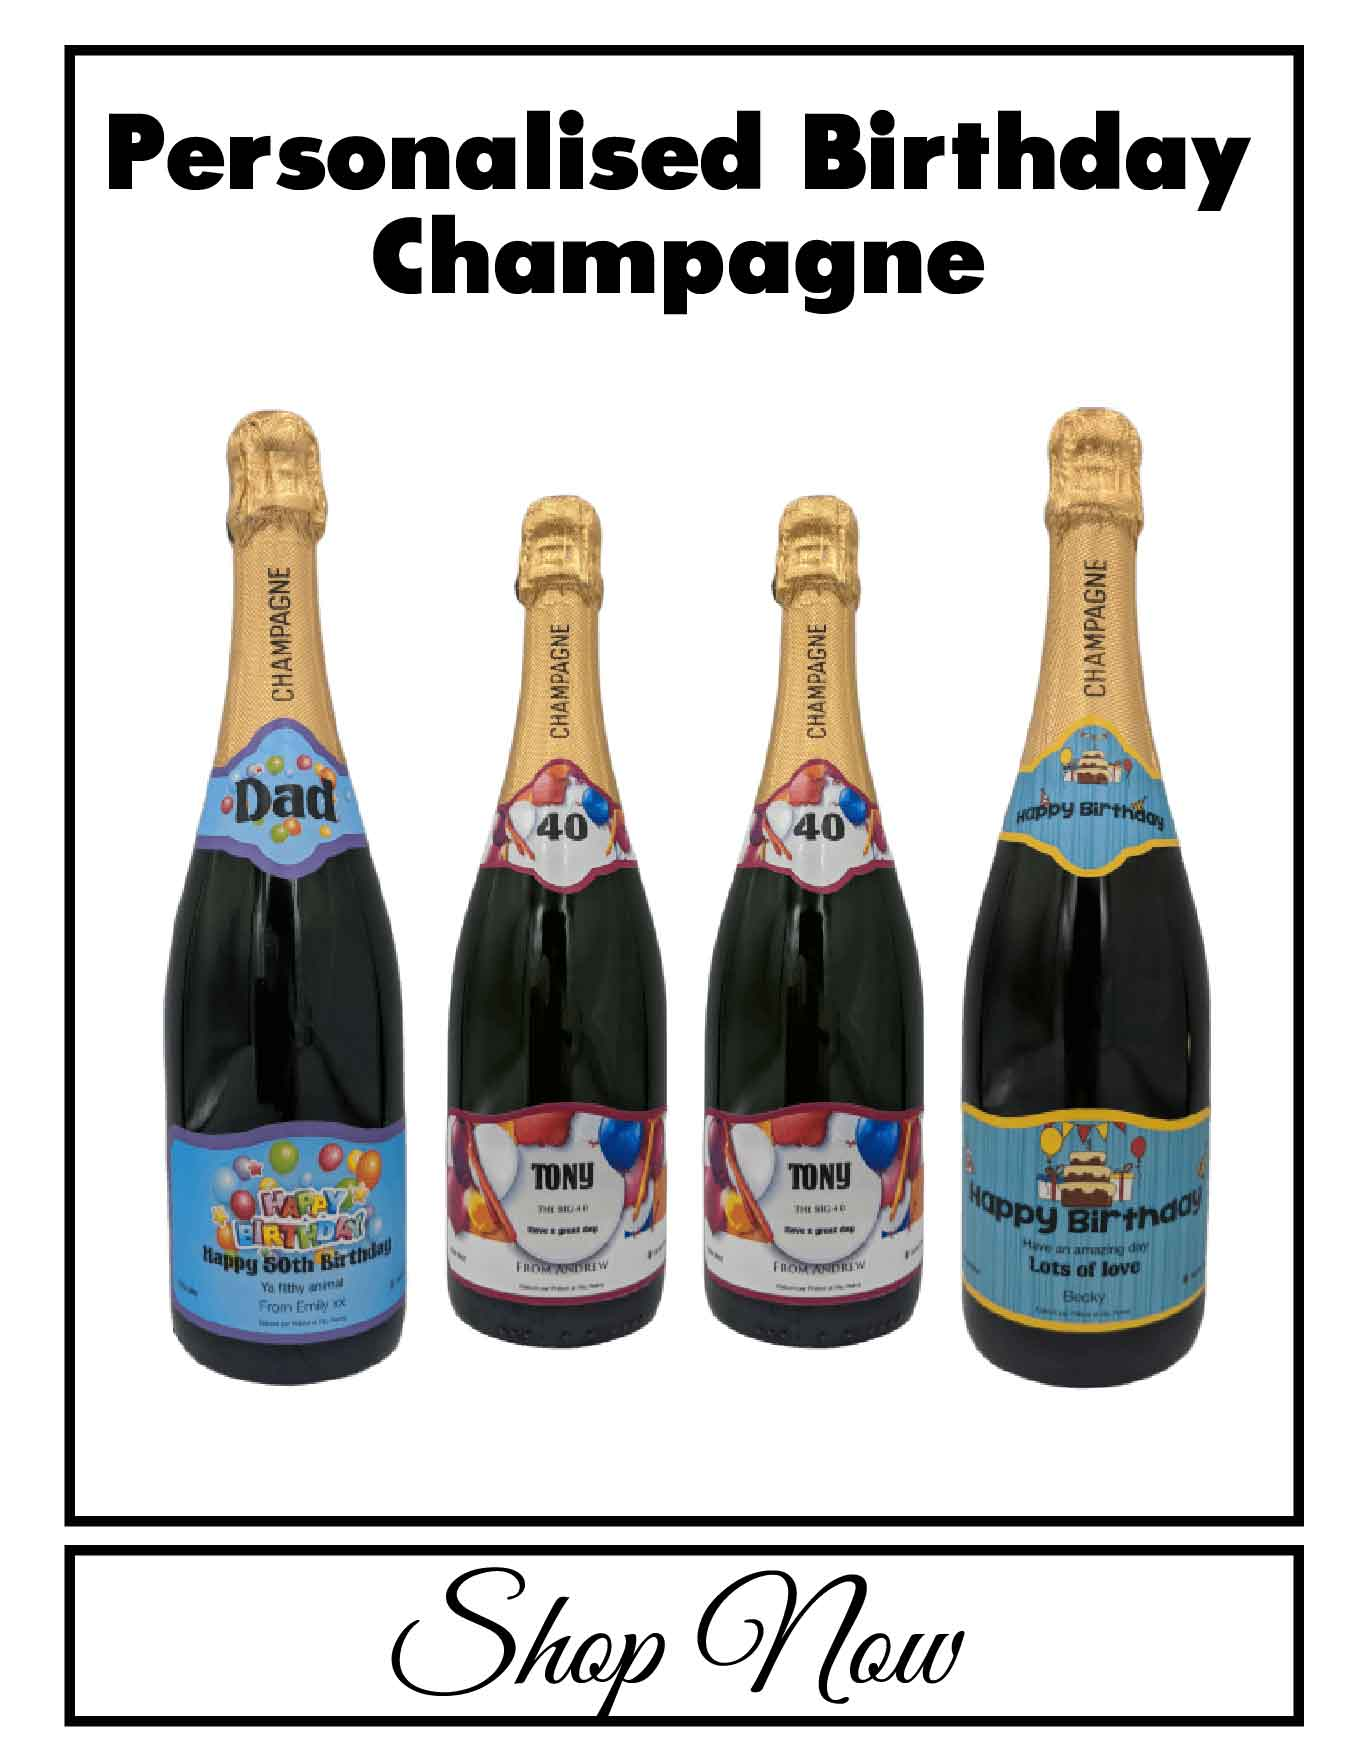 personalised Champagne customised bottle label delivery uk sparkling wine birthday gift present bespoke unique